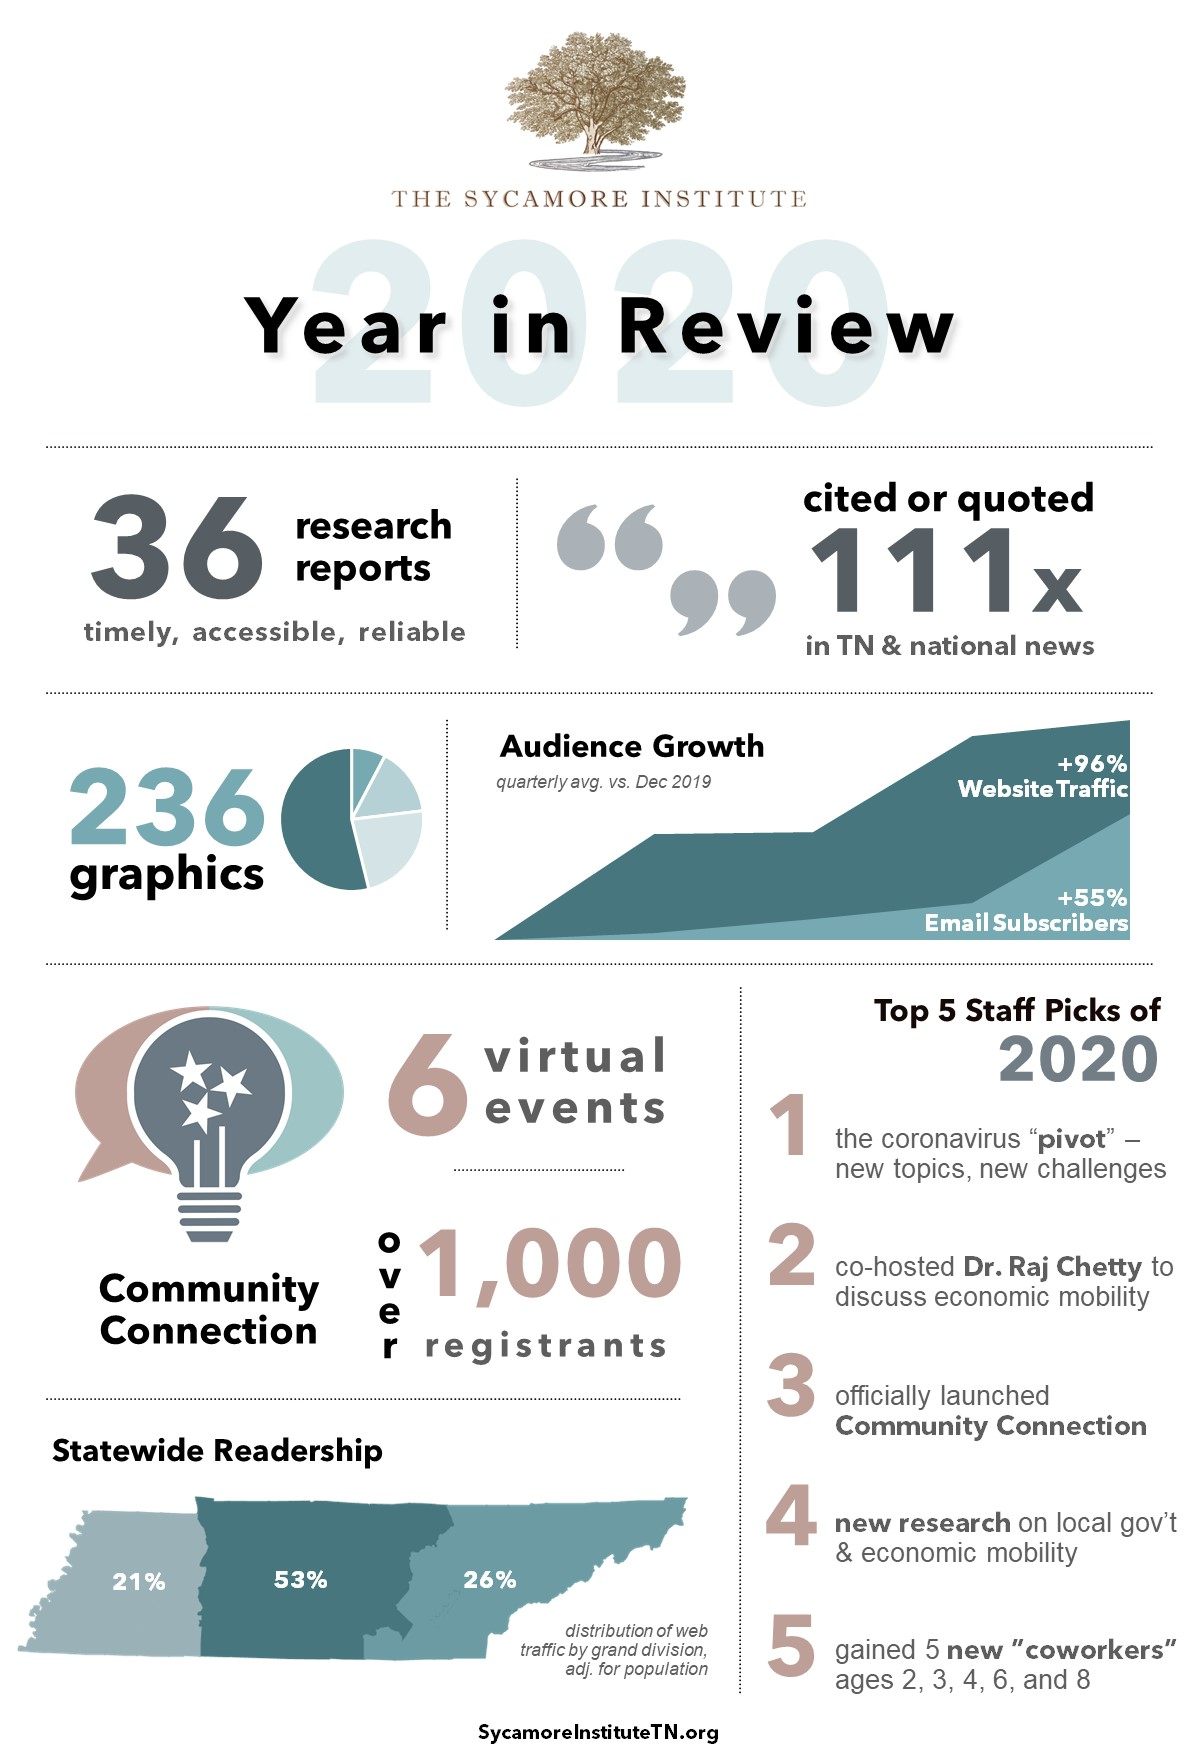 The Sycamore Institute's 2020 Year in Review infographic